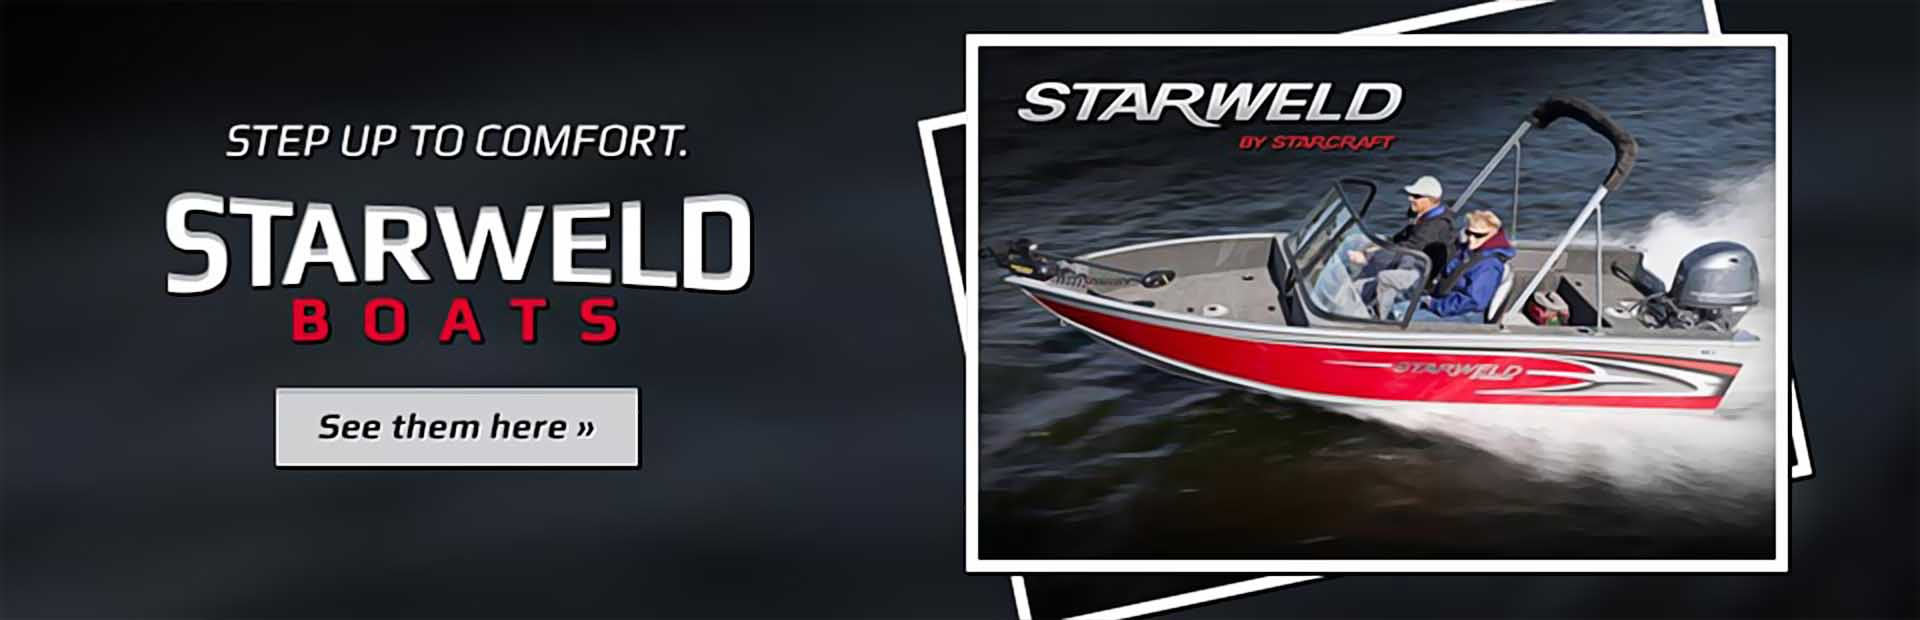 Starweld Boats: Click here to view the models.